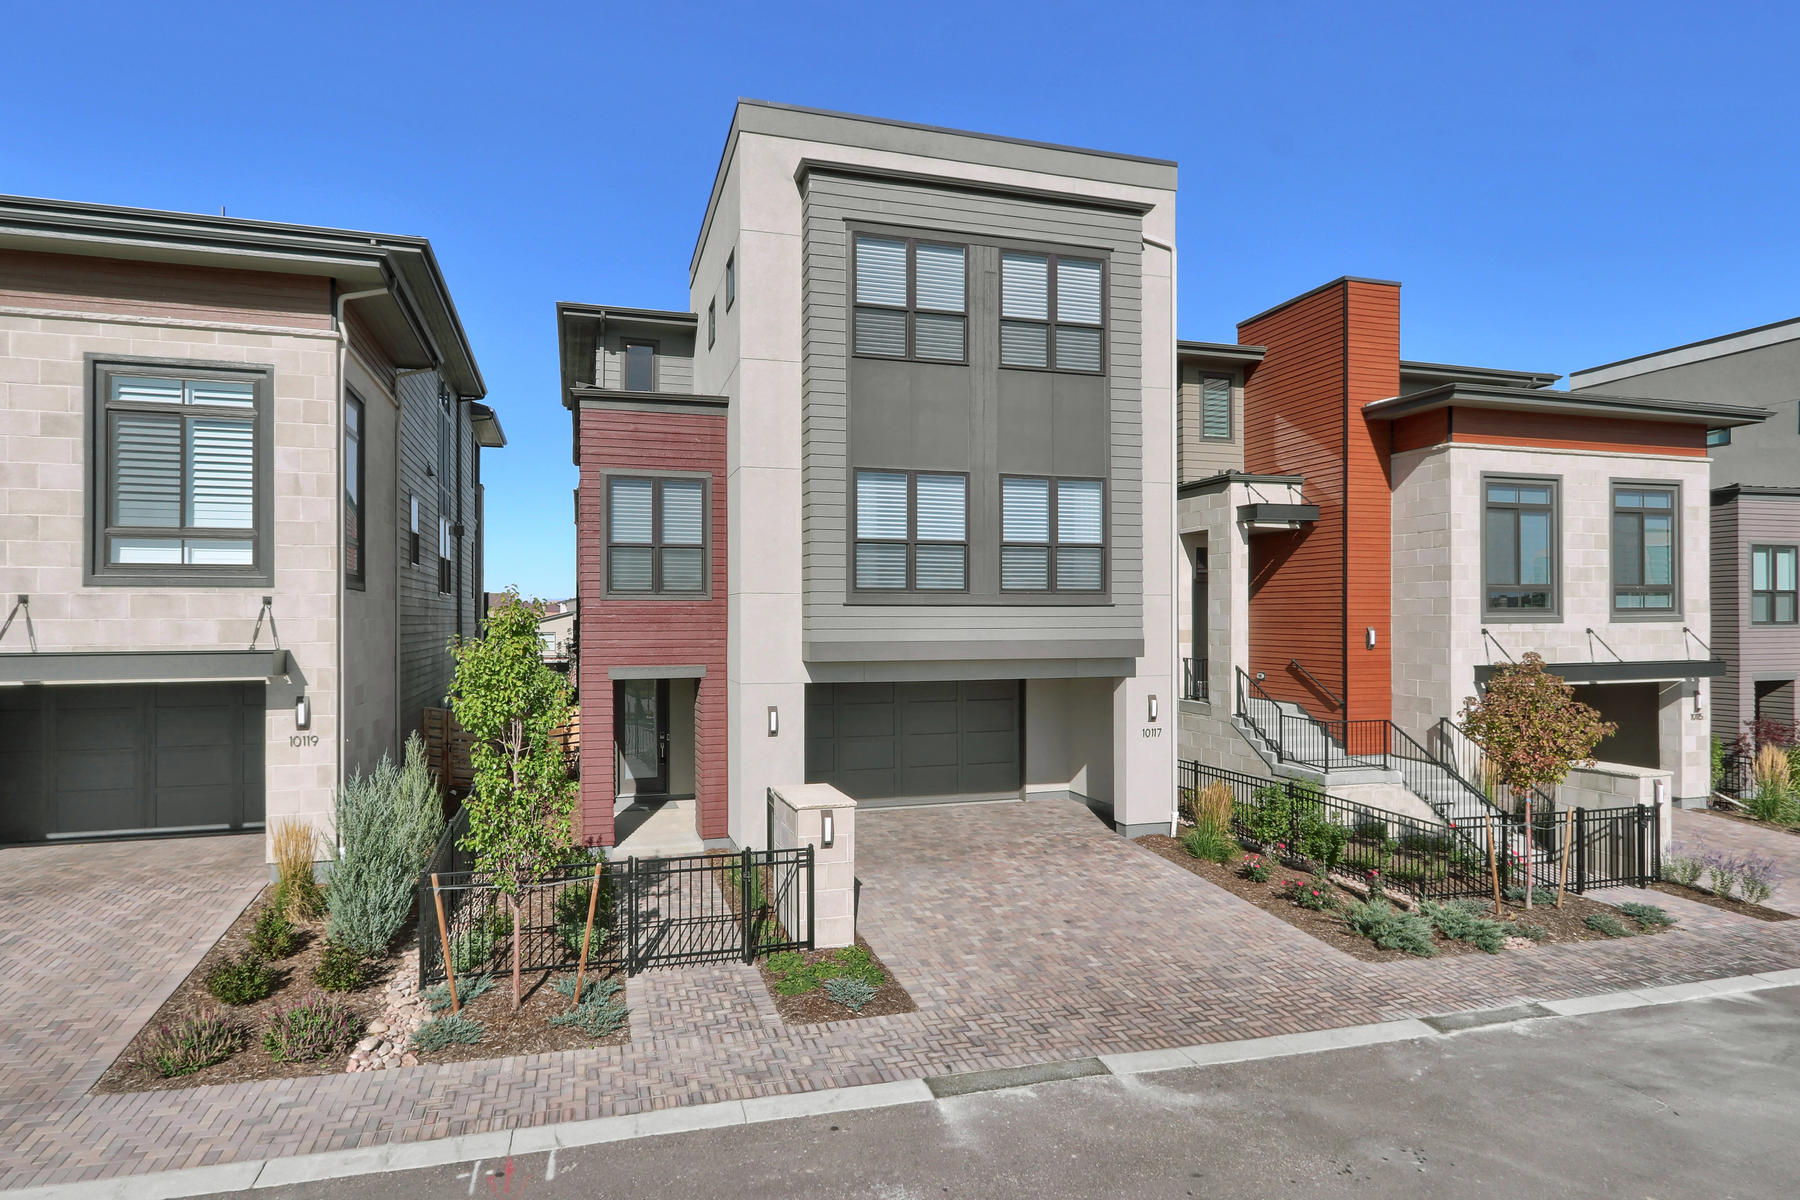 Single Family Homes for Sale at This Fresh Contemporary is a rare opportunity in the heart of Lone Tree. 10117 Bellwether Ln Lone Tree, Colorado 80124 United States